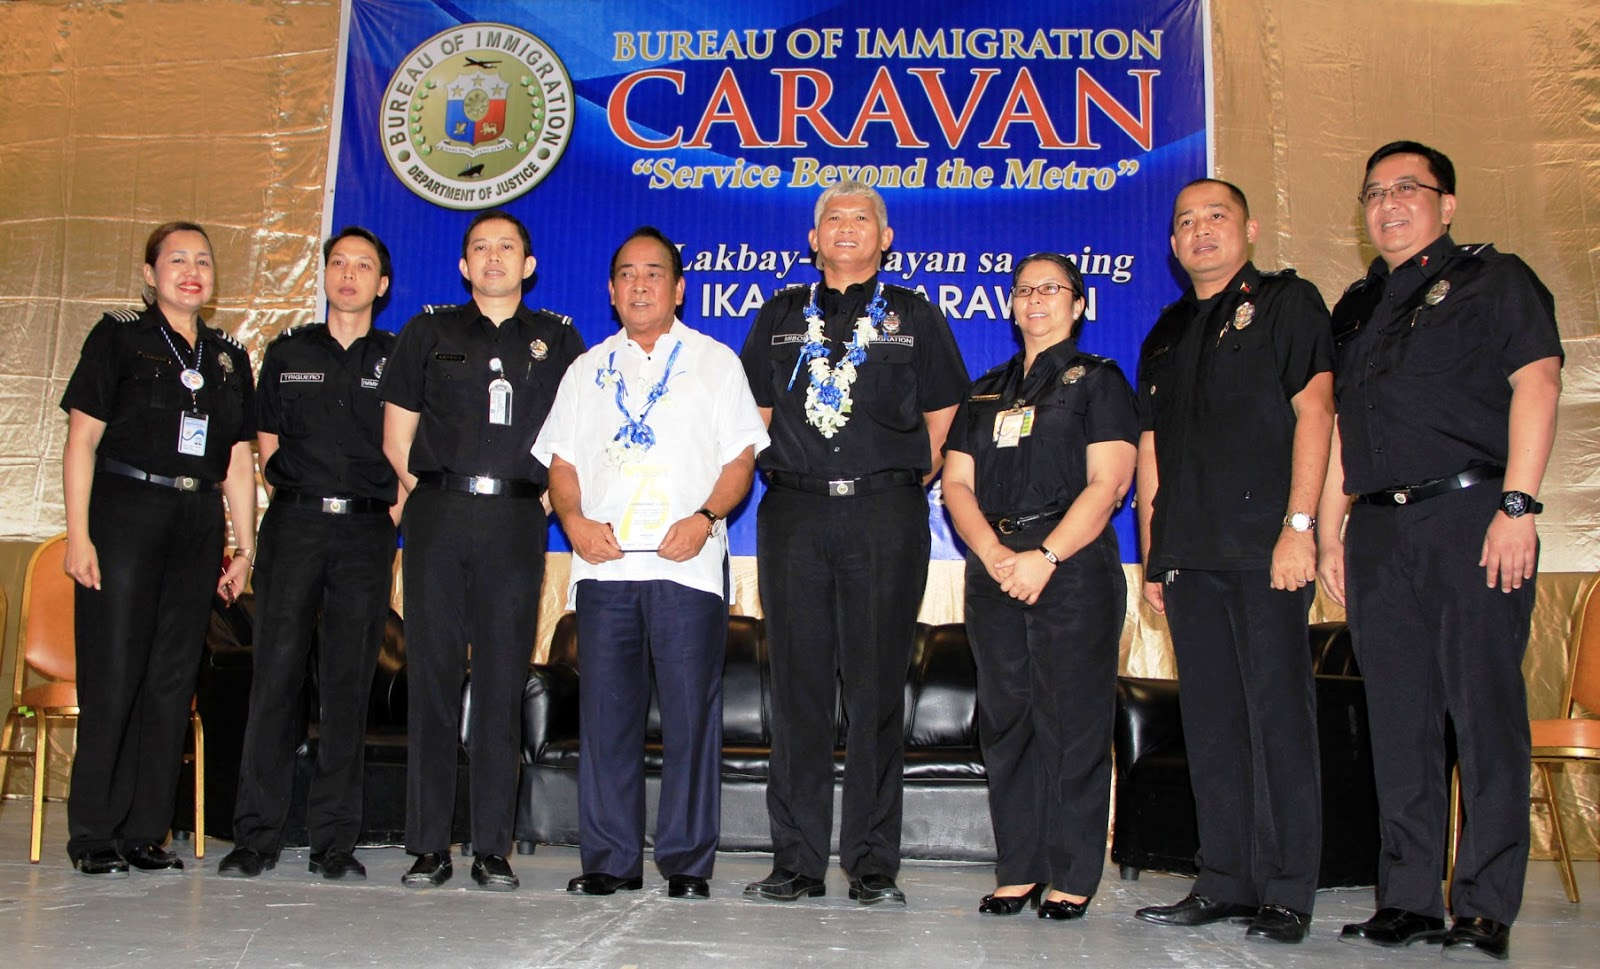 posts in subicnewslink the bi caravan aimed to make available immigration services and transactions for foreigners in the areas of zambales and the subic bay port zone